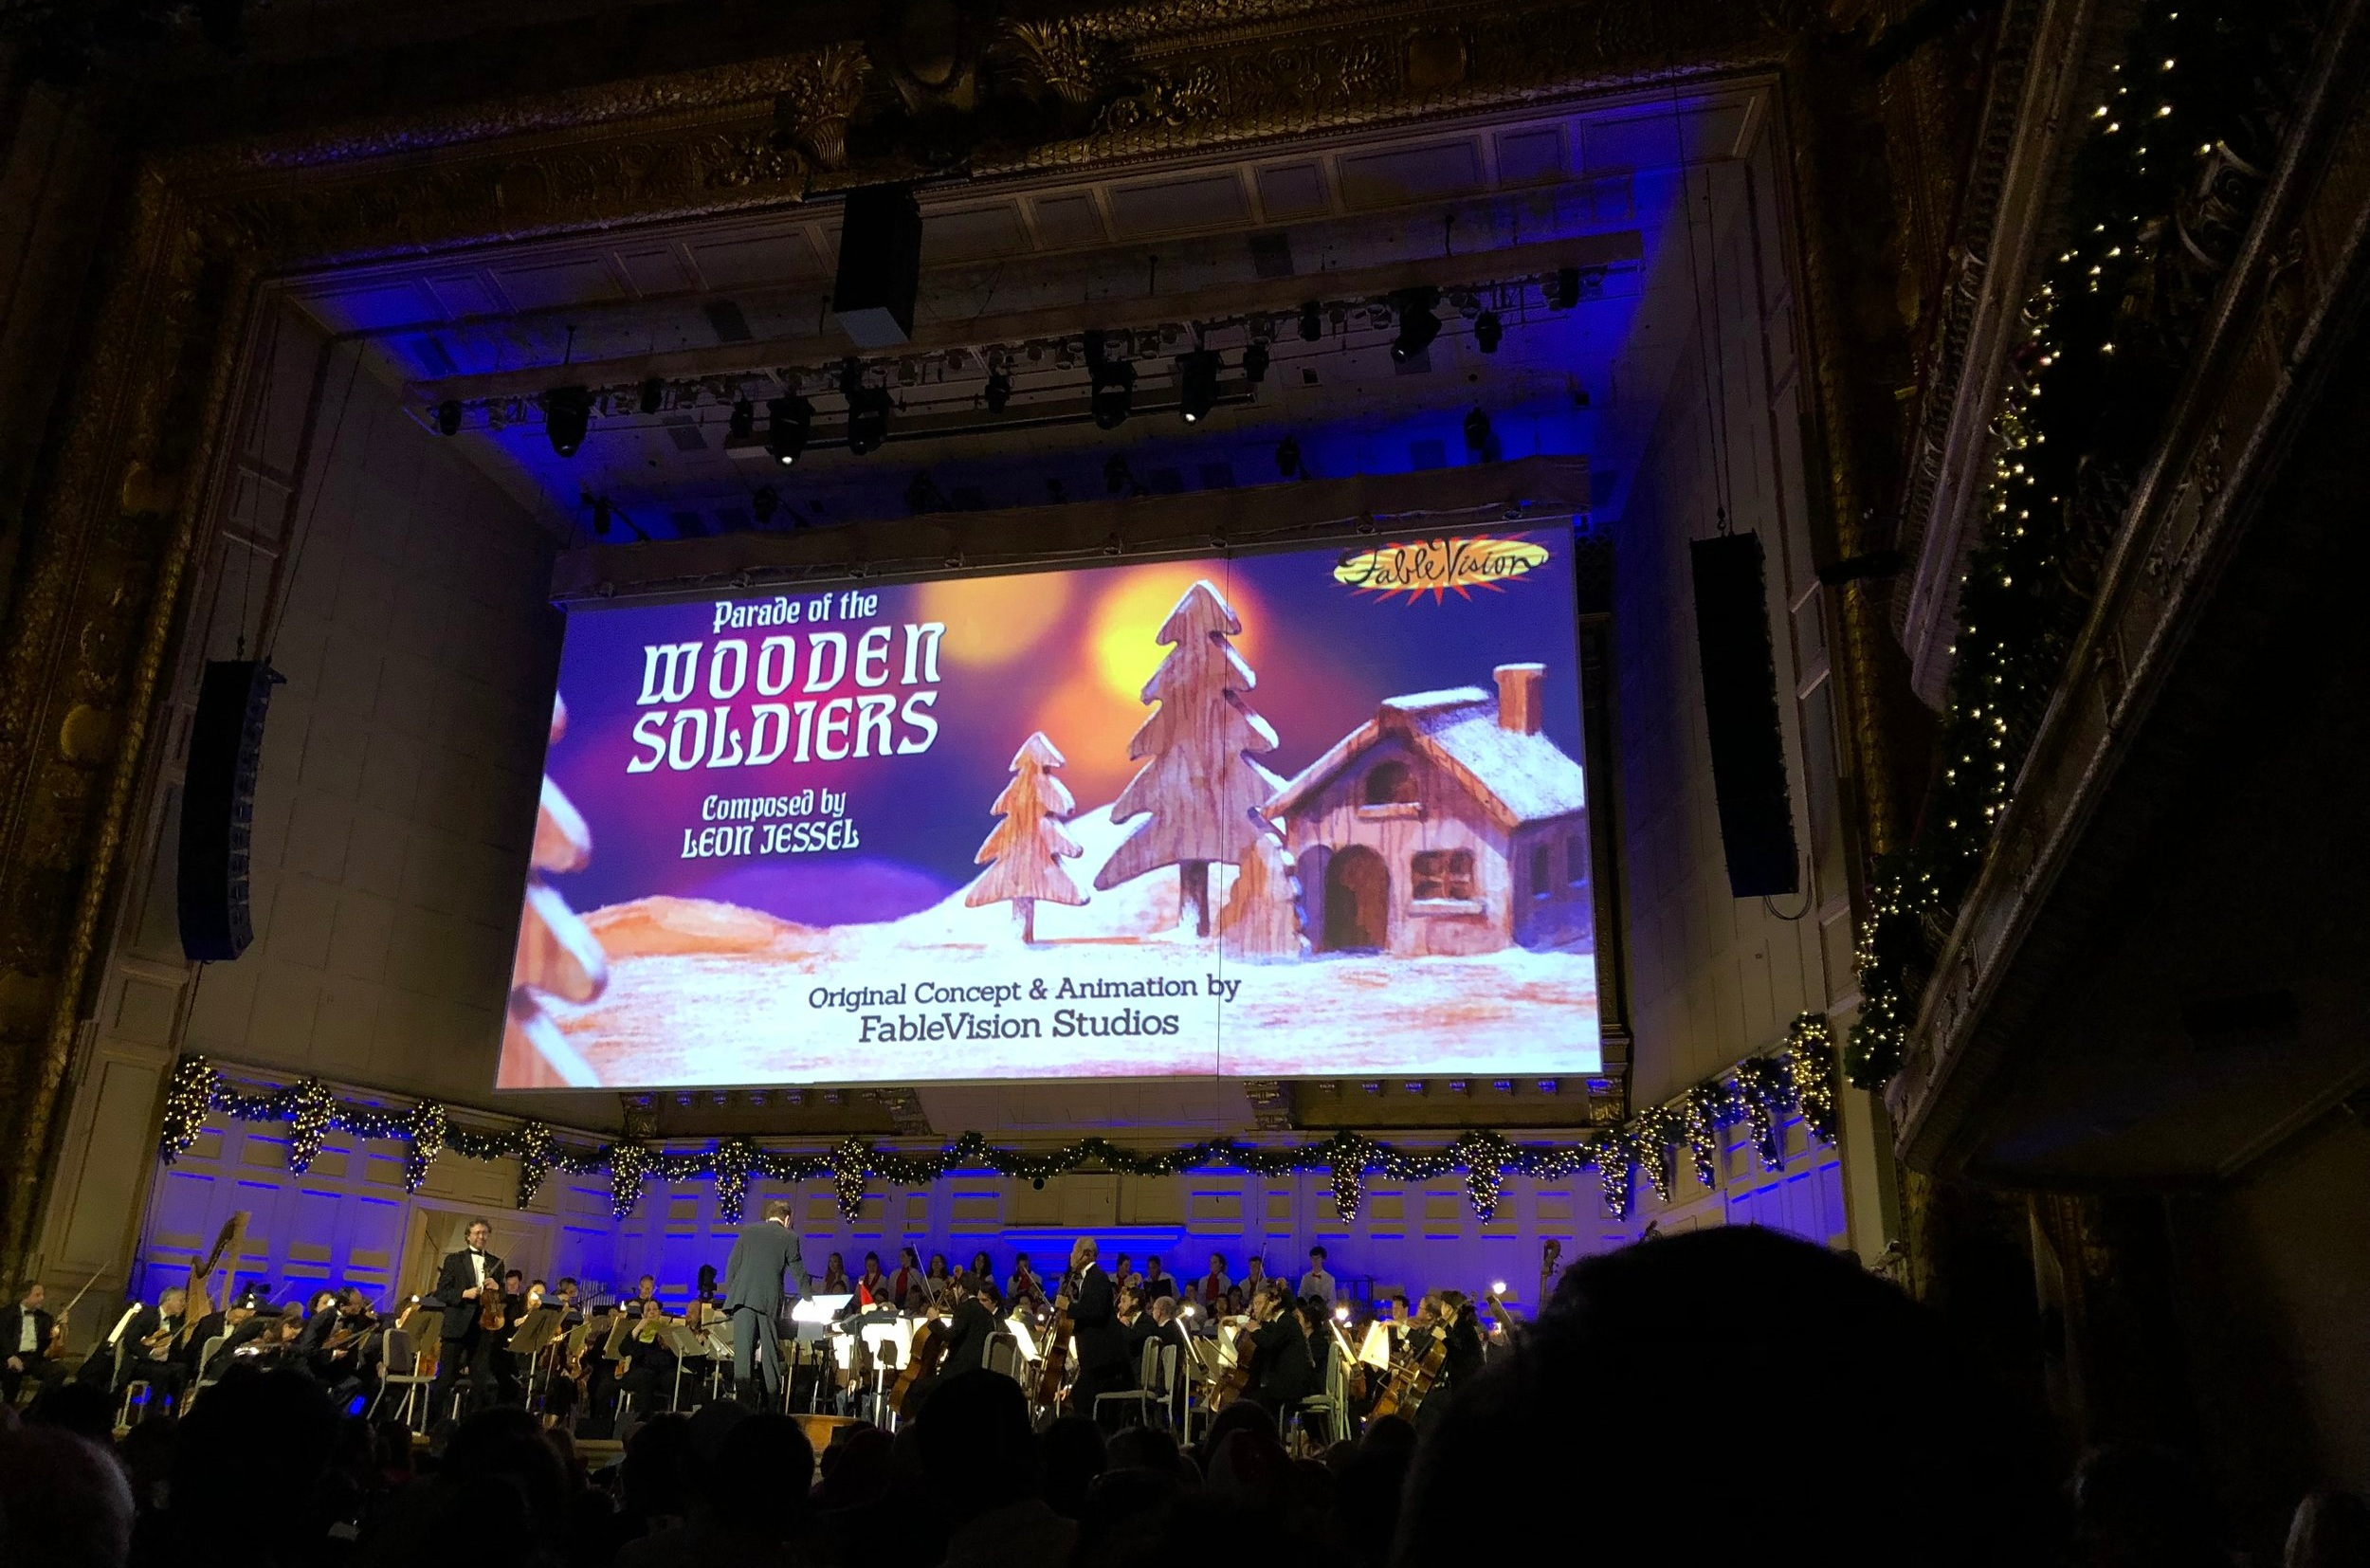 """FableVision's animated accompaniment to Leon Jessel's """"Parade of the Wooden Soldiers"""" on the big screen at the Holiday Pops"""